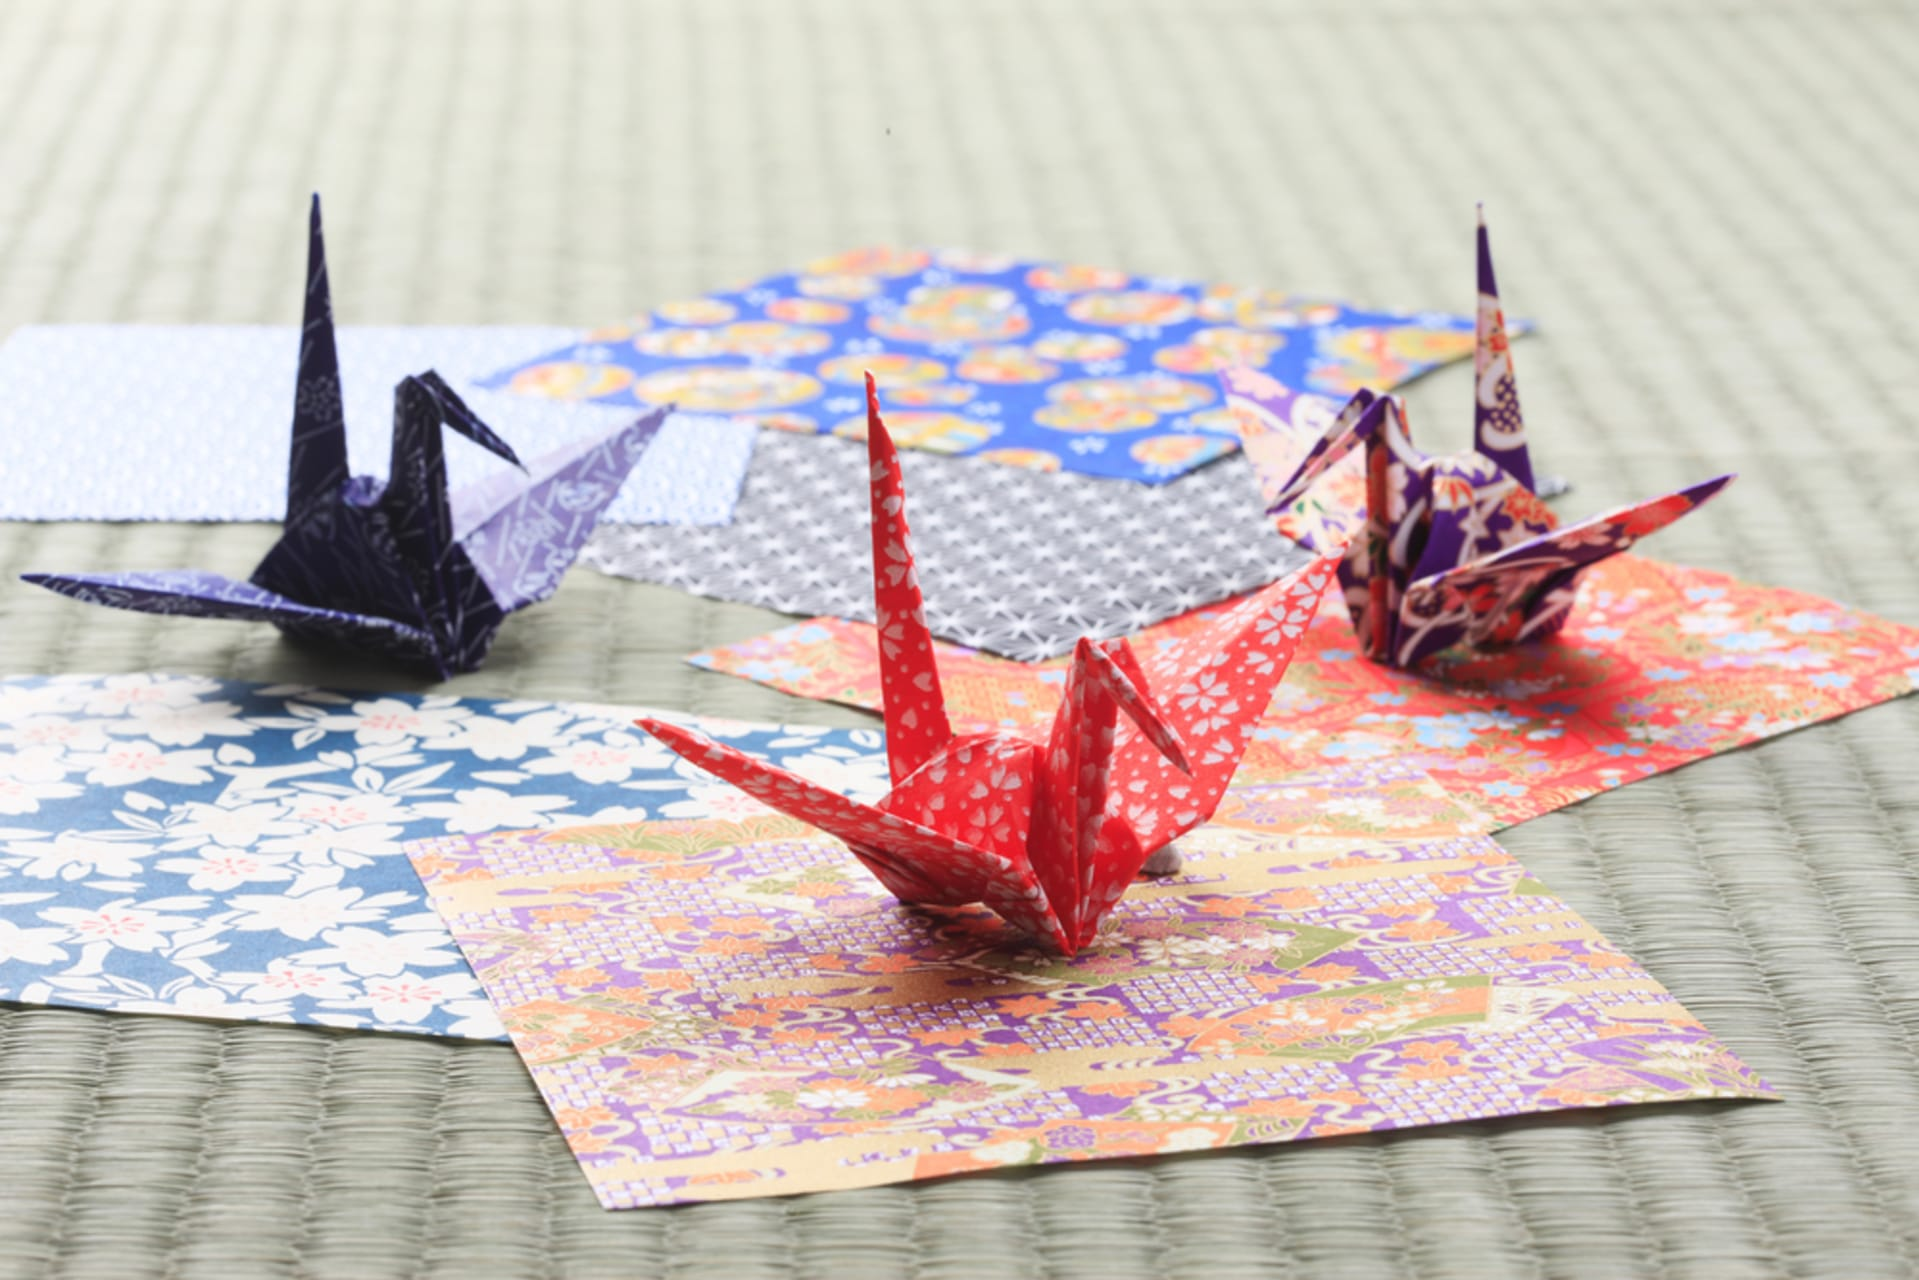 Tokyo - The Art of Paper Folding - Origami